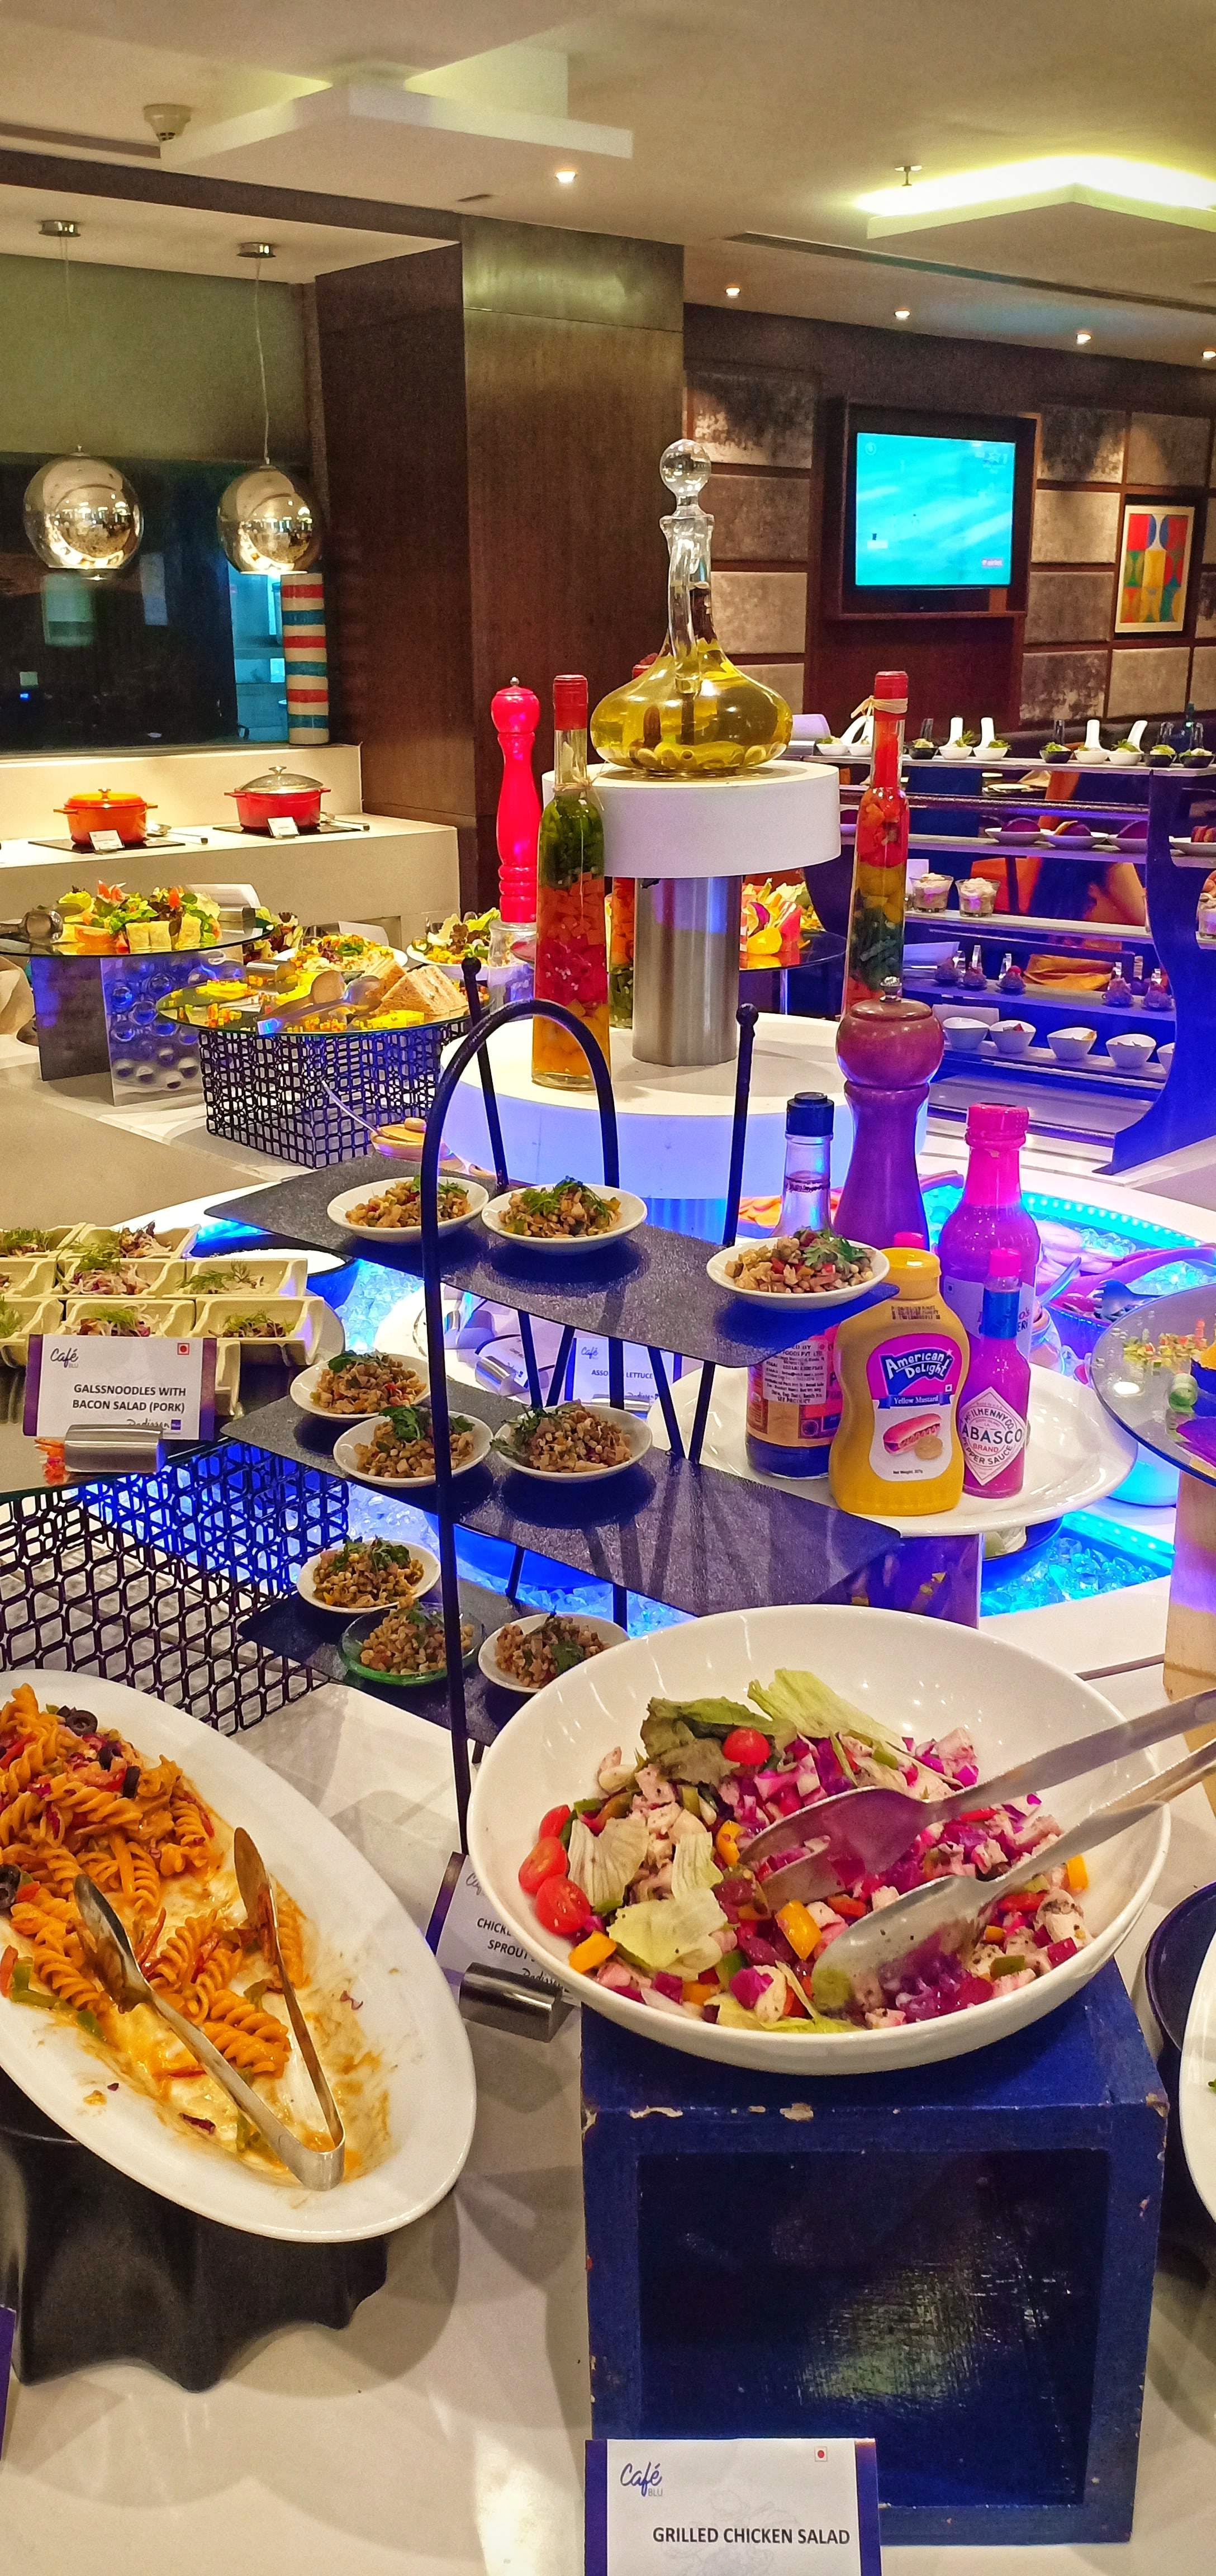 Treat Yourself To Royal & Beautiful Sunday Brunch At Cafe Blu!